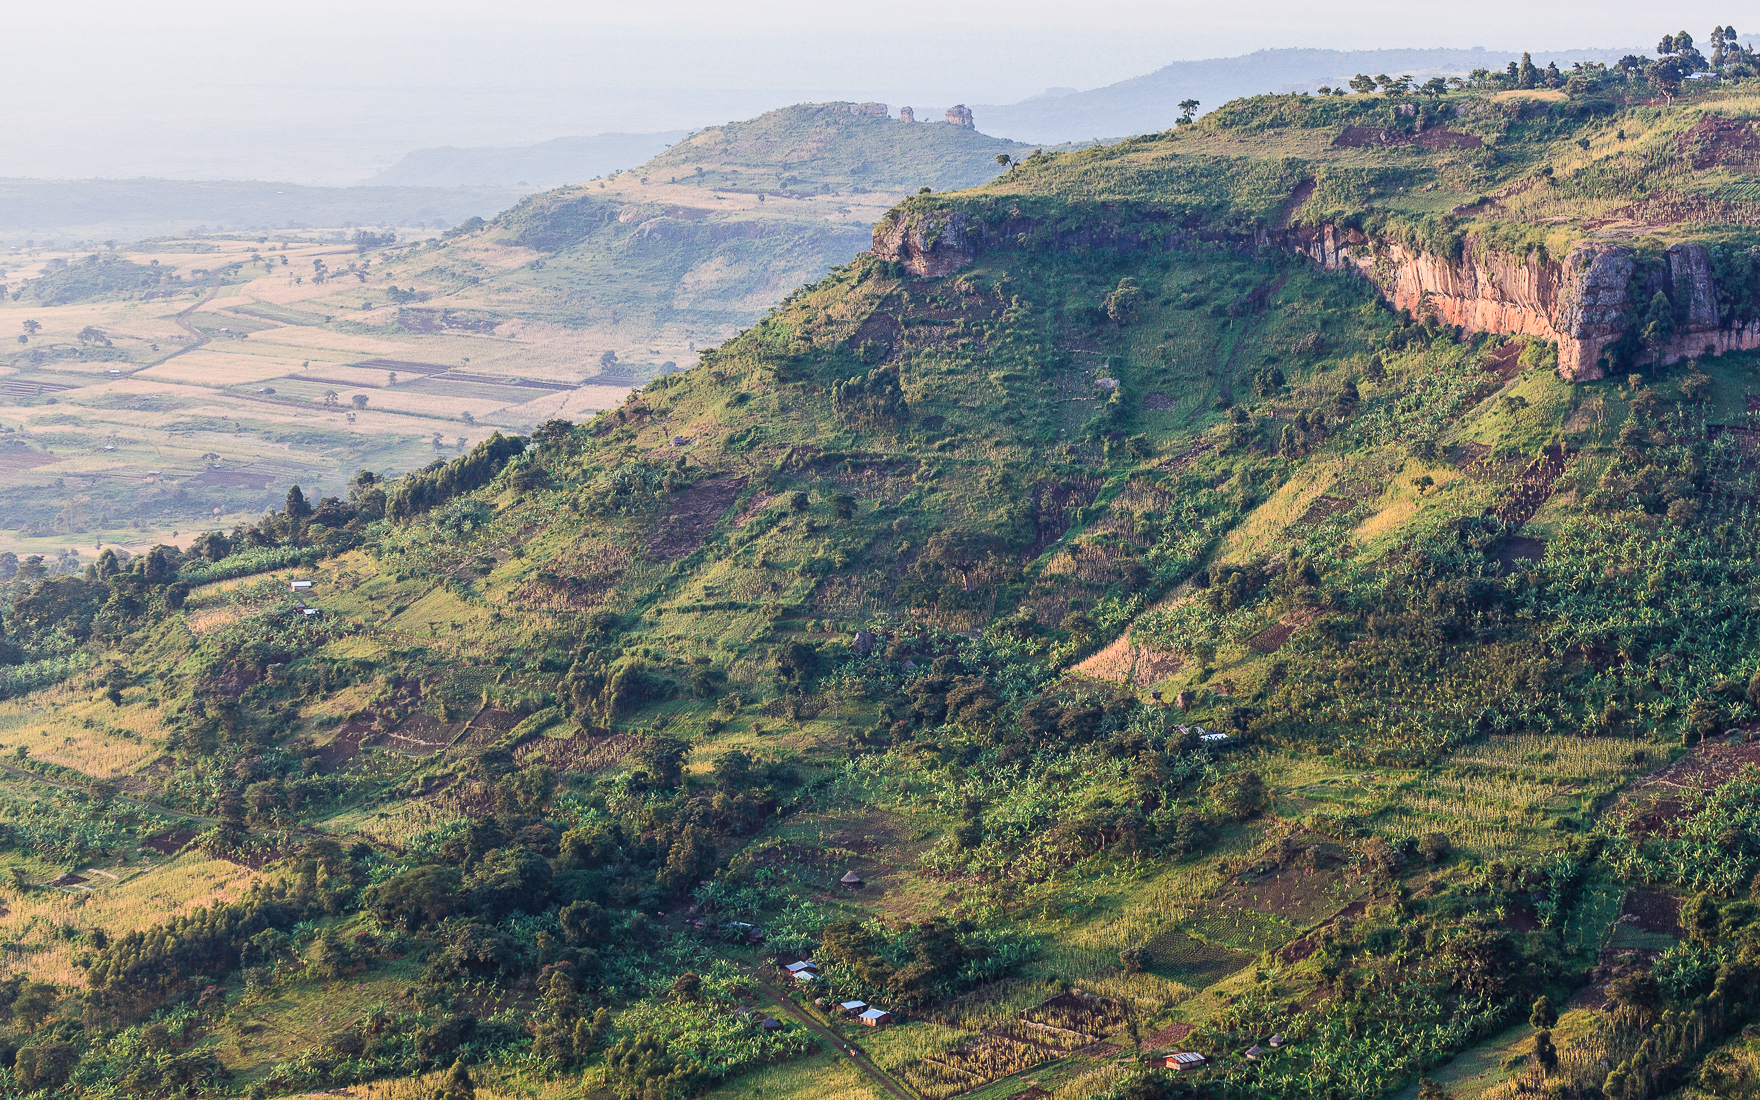 Agriculture on the slopes of Mount Elgon